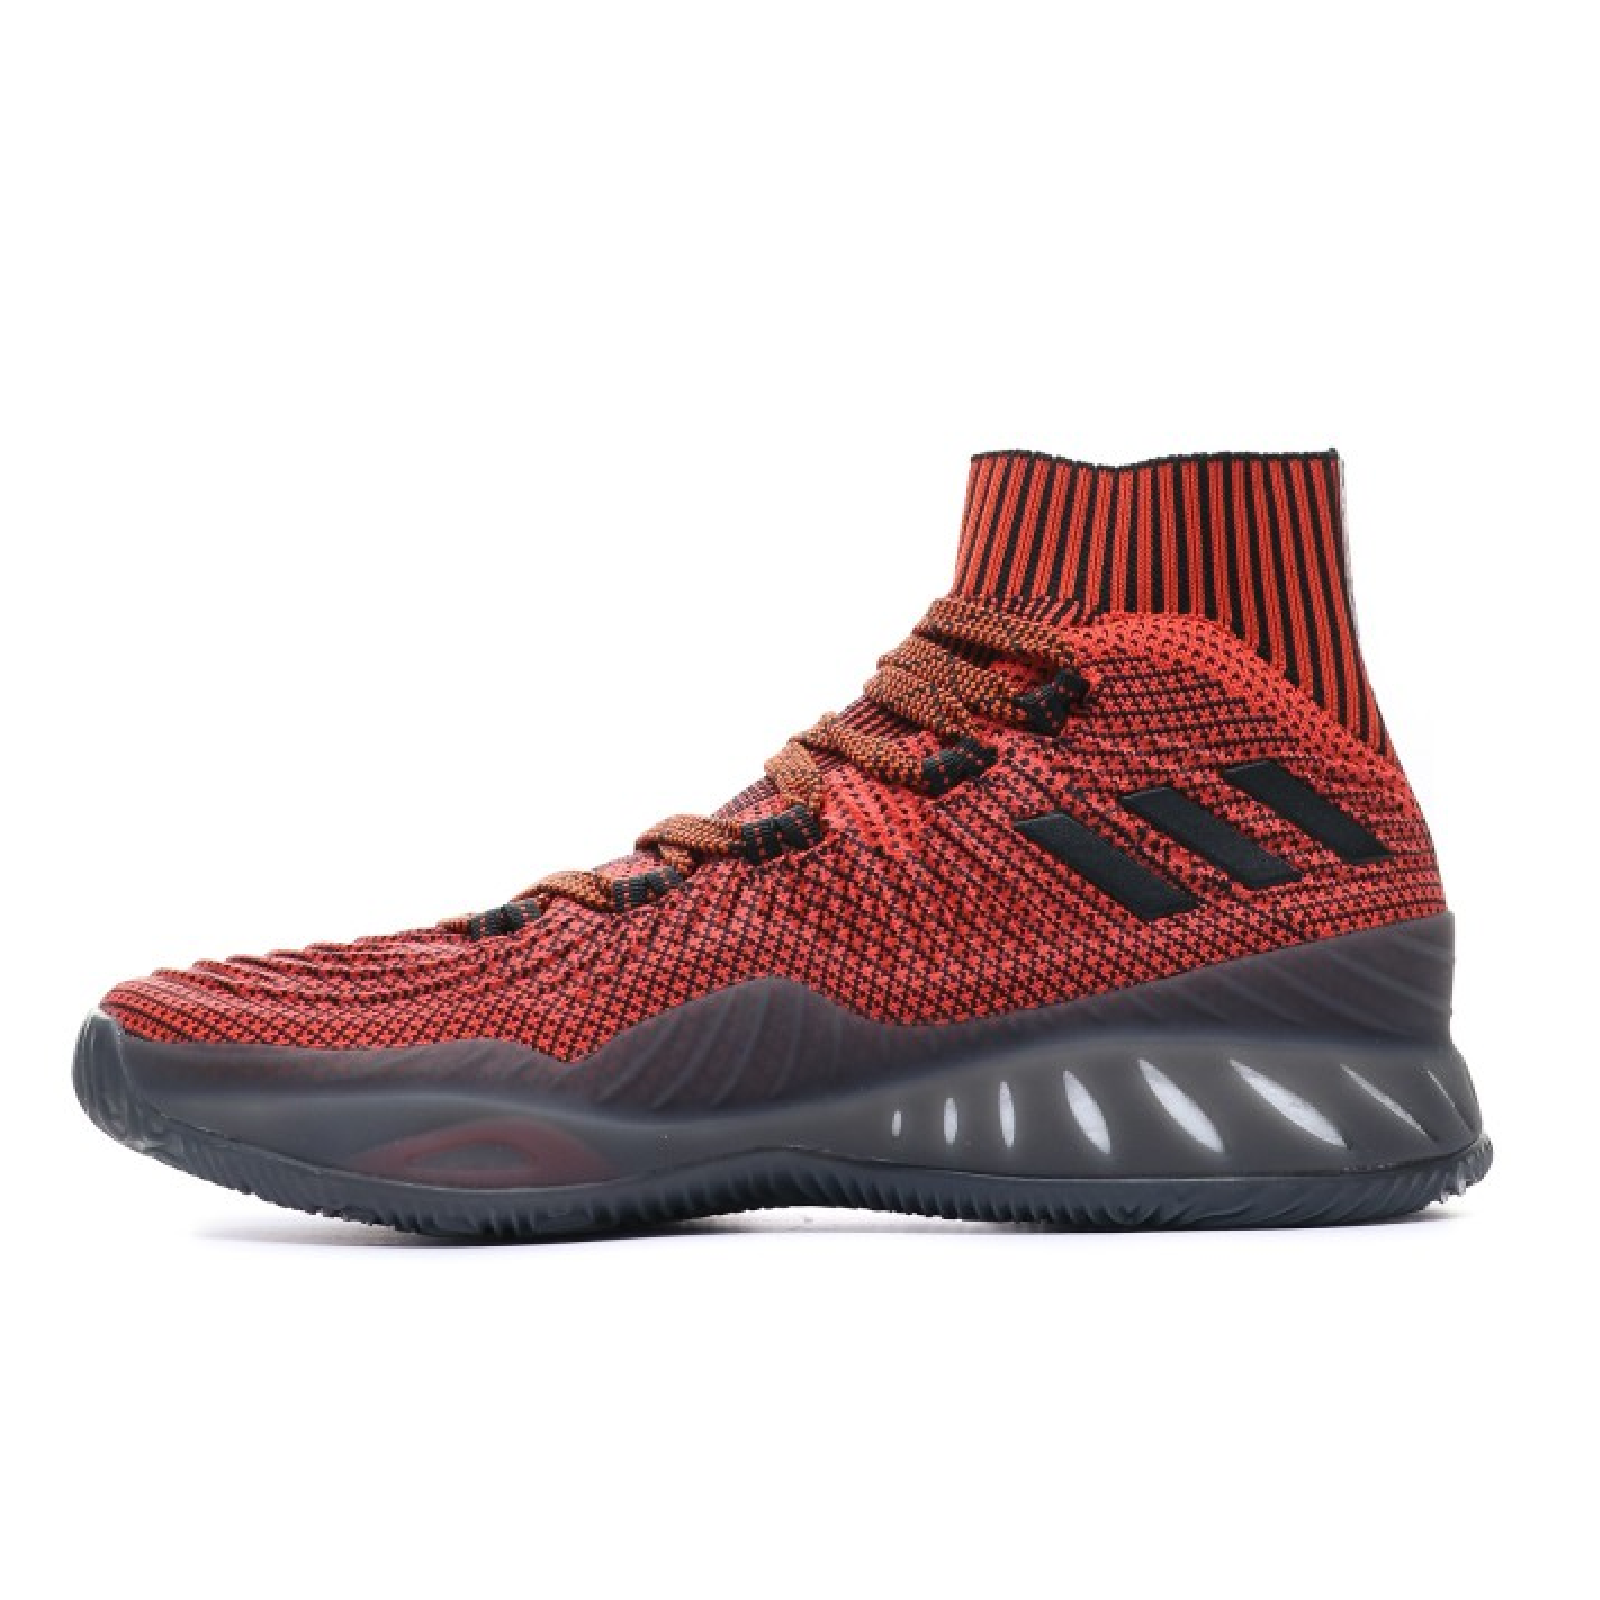 ADIDAS CRAZY EXPLOSIVE 2017 PRIMEKNIT 48-52.5 NEU indoor ghost top pro model